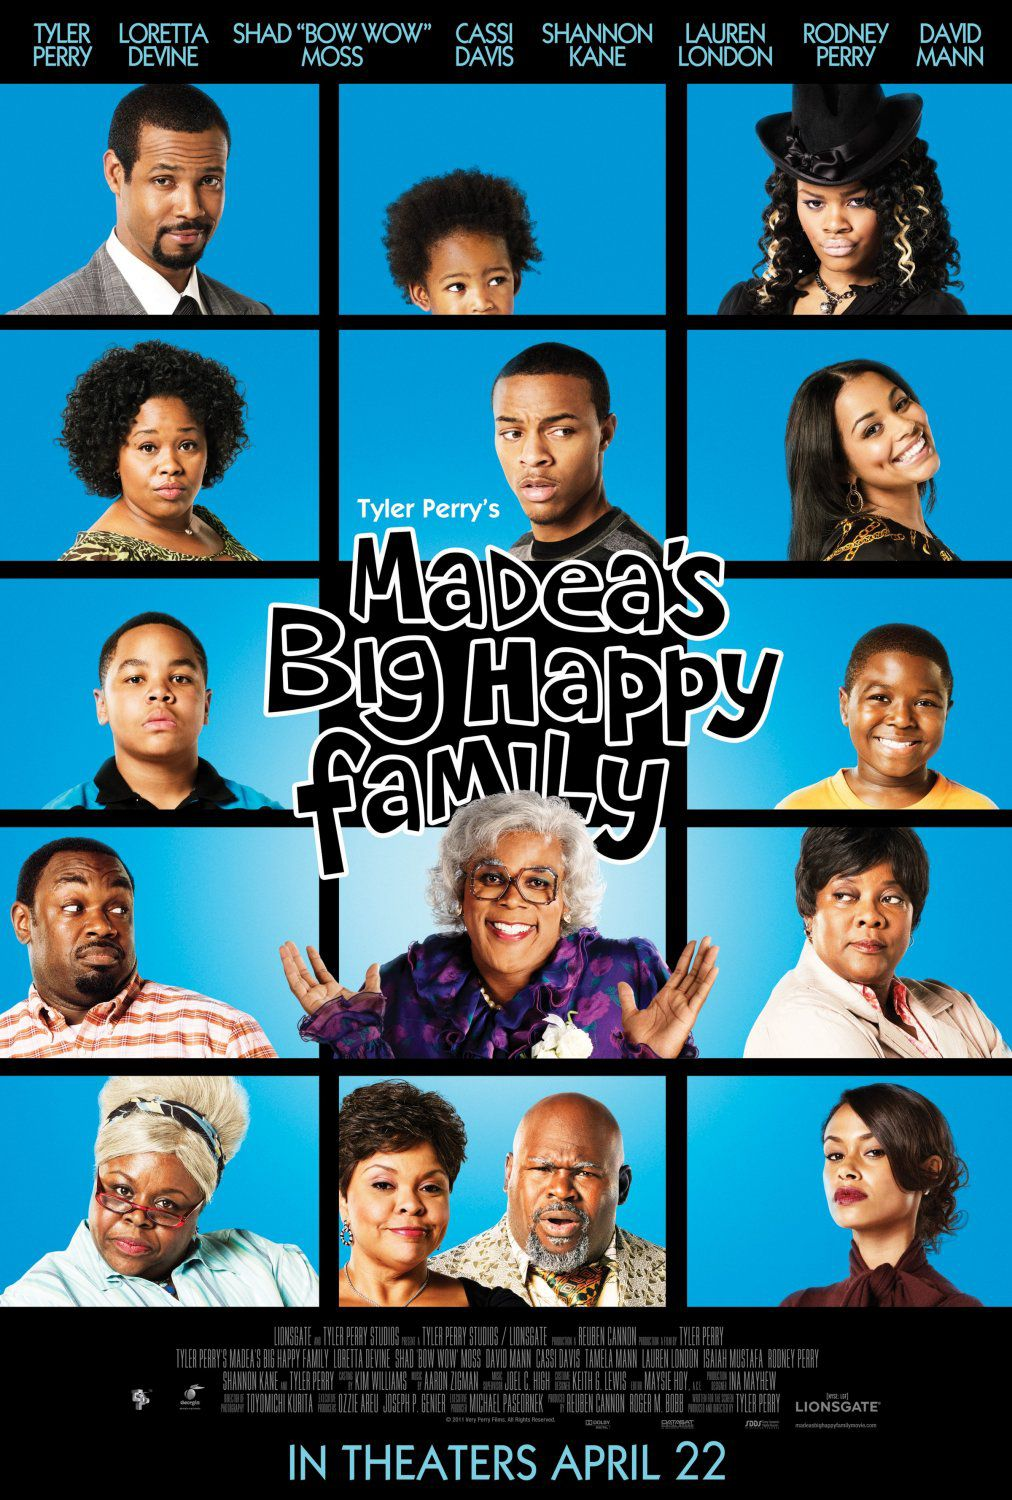 "Madeas big Happy Family - Madea Famiglia Felice - Tyler Perry - Loretta Devine - Shad ""Bow How"" Moss - Cassi Davis - Shannon Kane - Lauren London - Rodney Perry - David Mann - film funny poster"